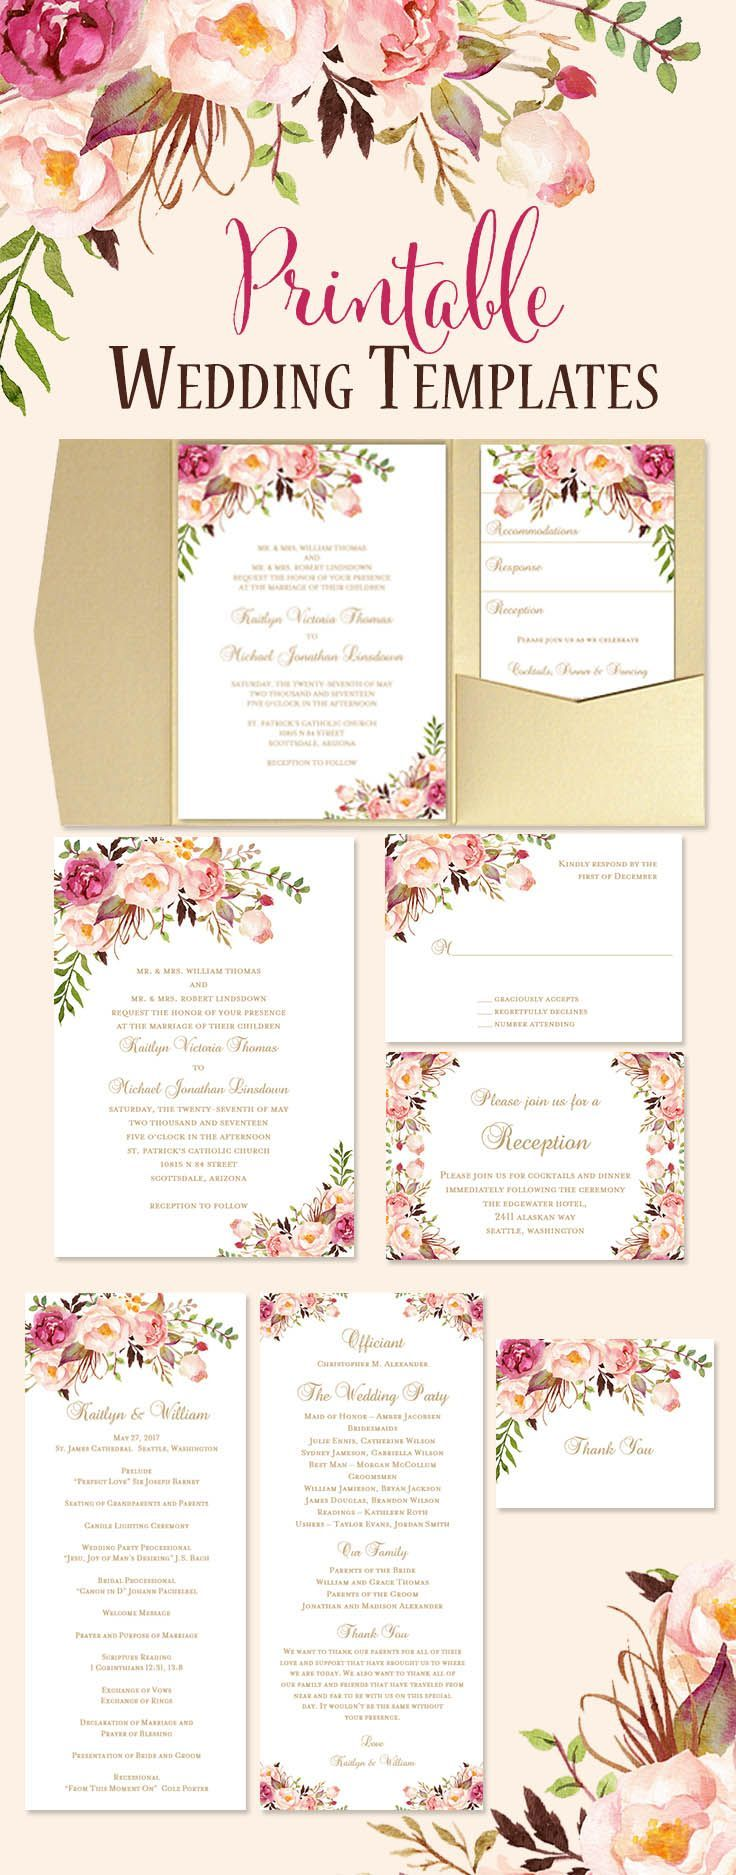 Stunning watercolor floral wedding stationery you can